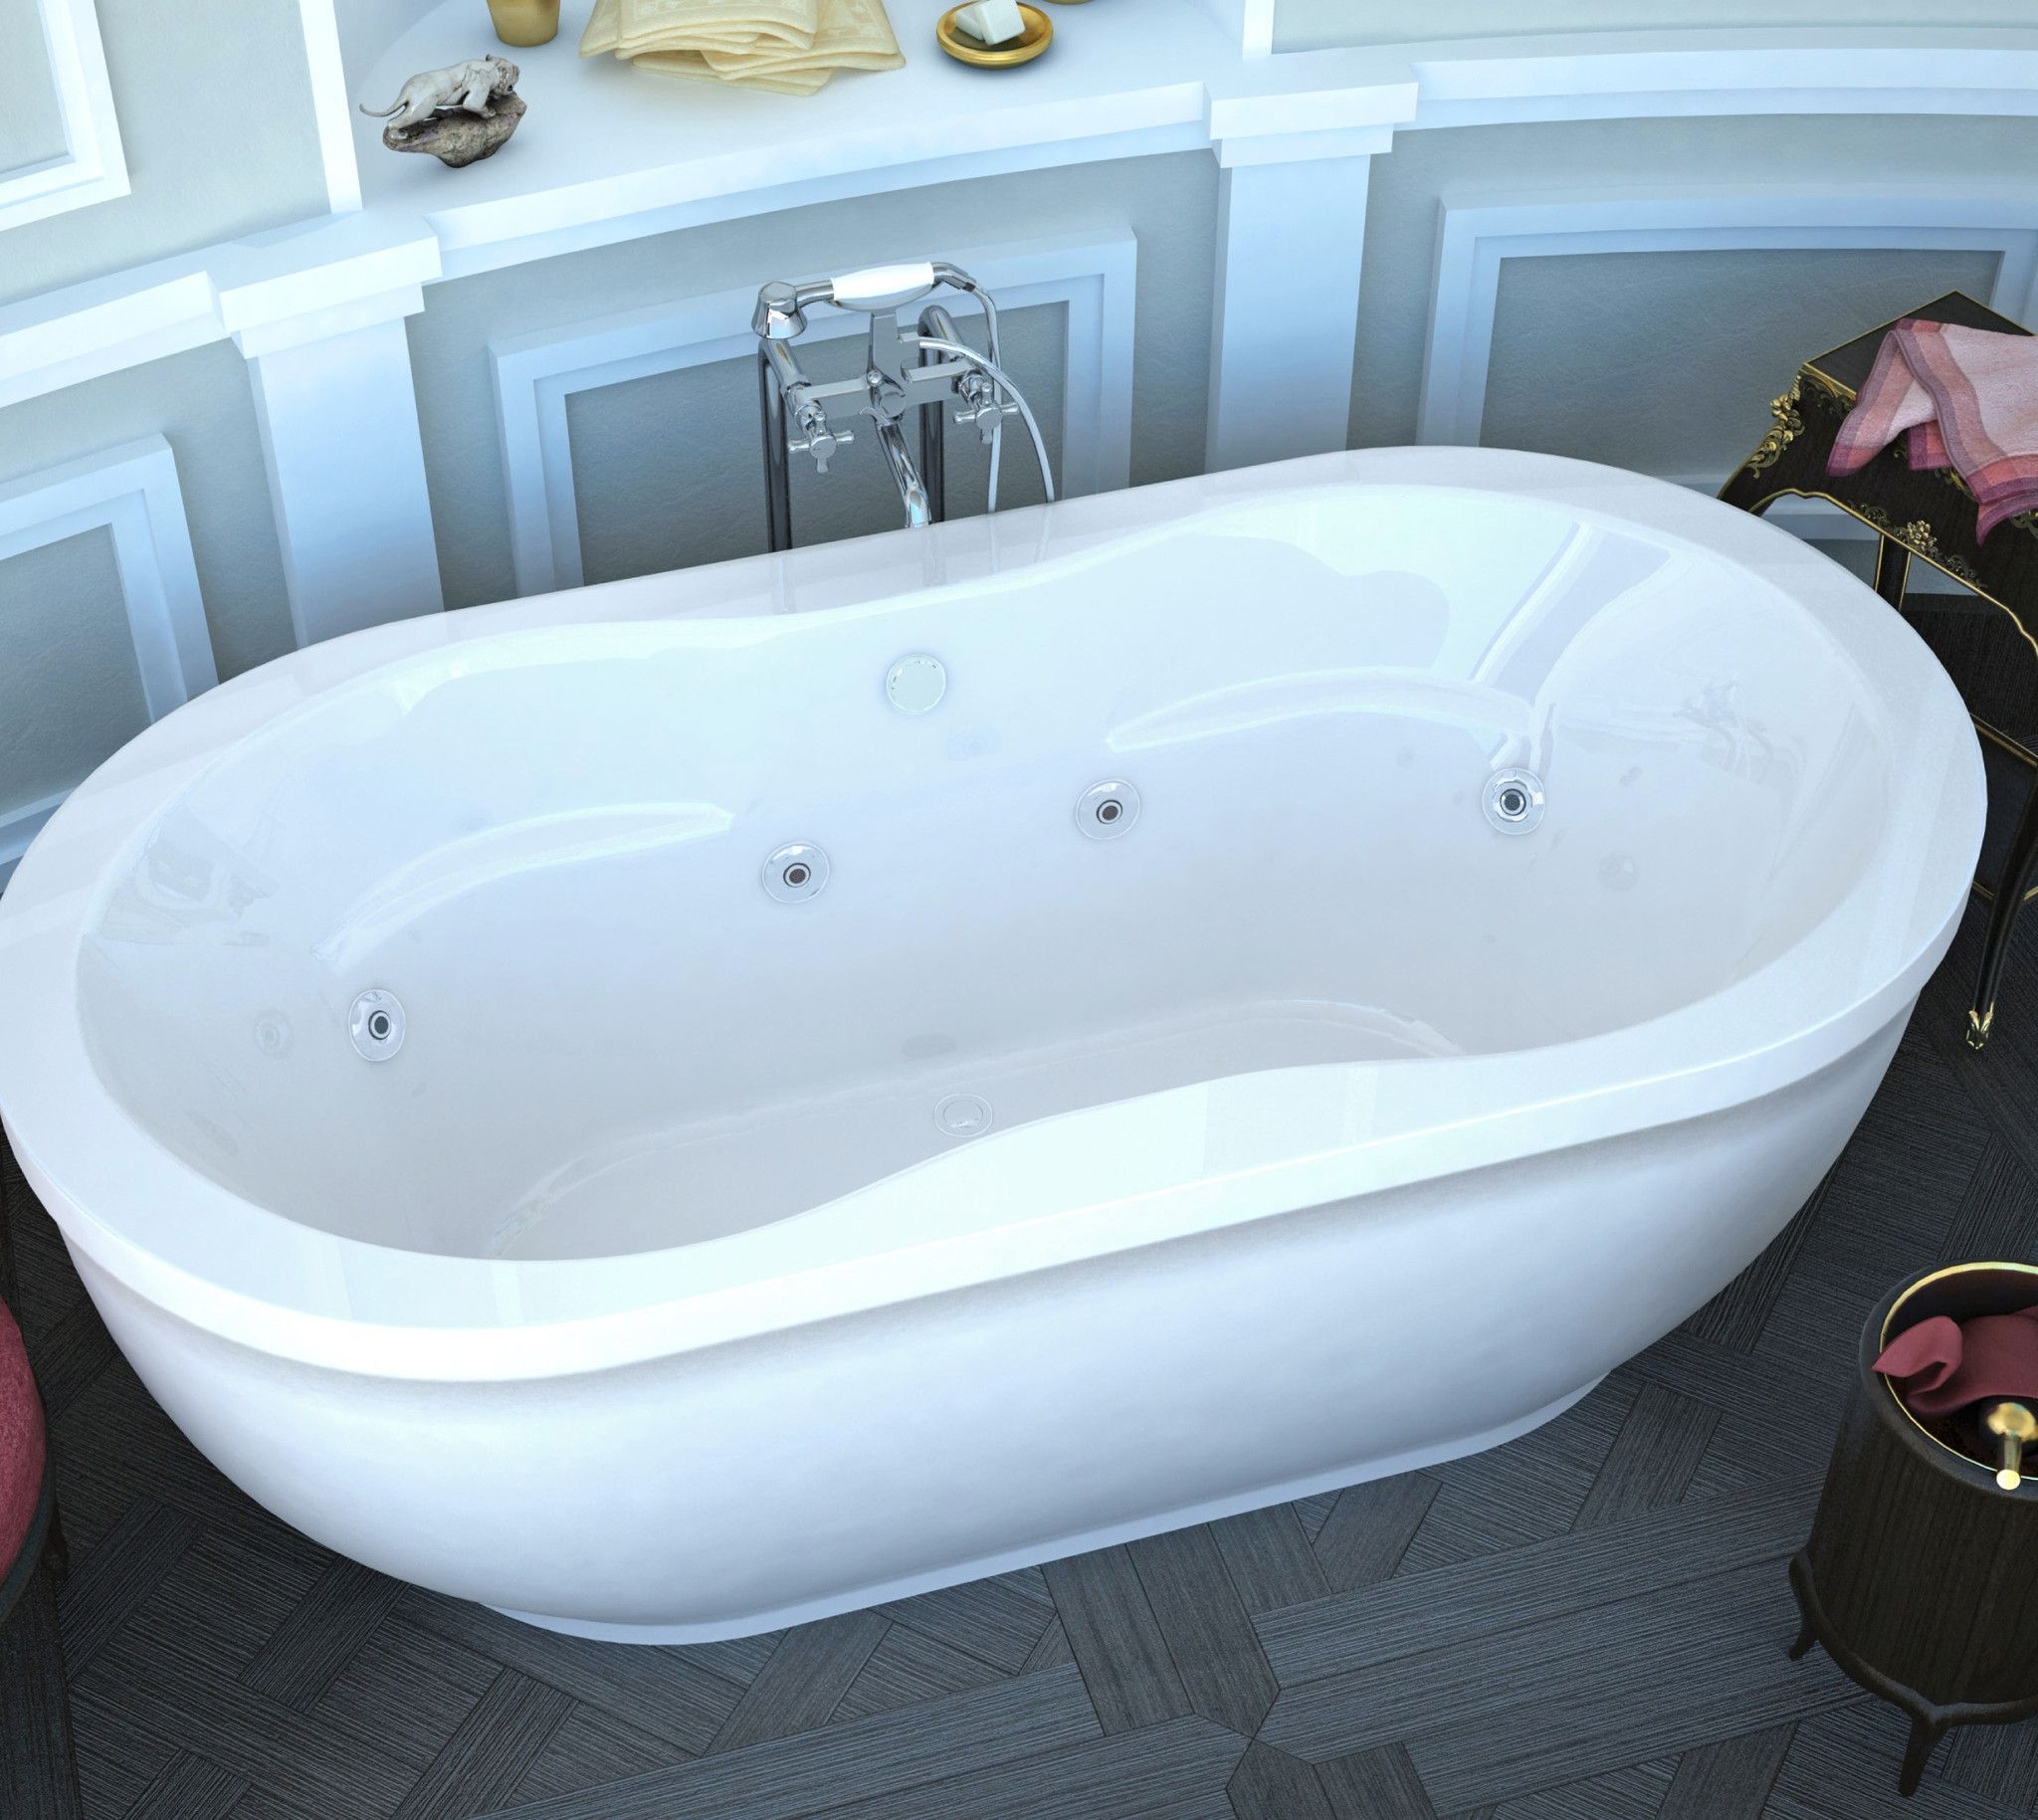 Atlantis Whirlpools 3471AW Embrace 34 x 71 Oval Freestanding ...